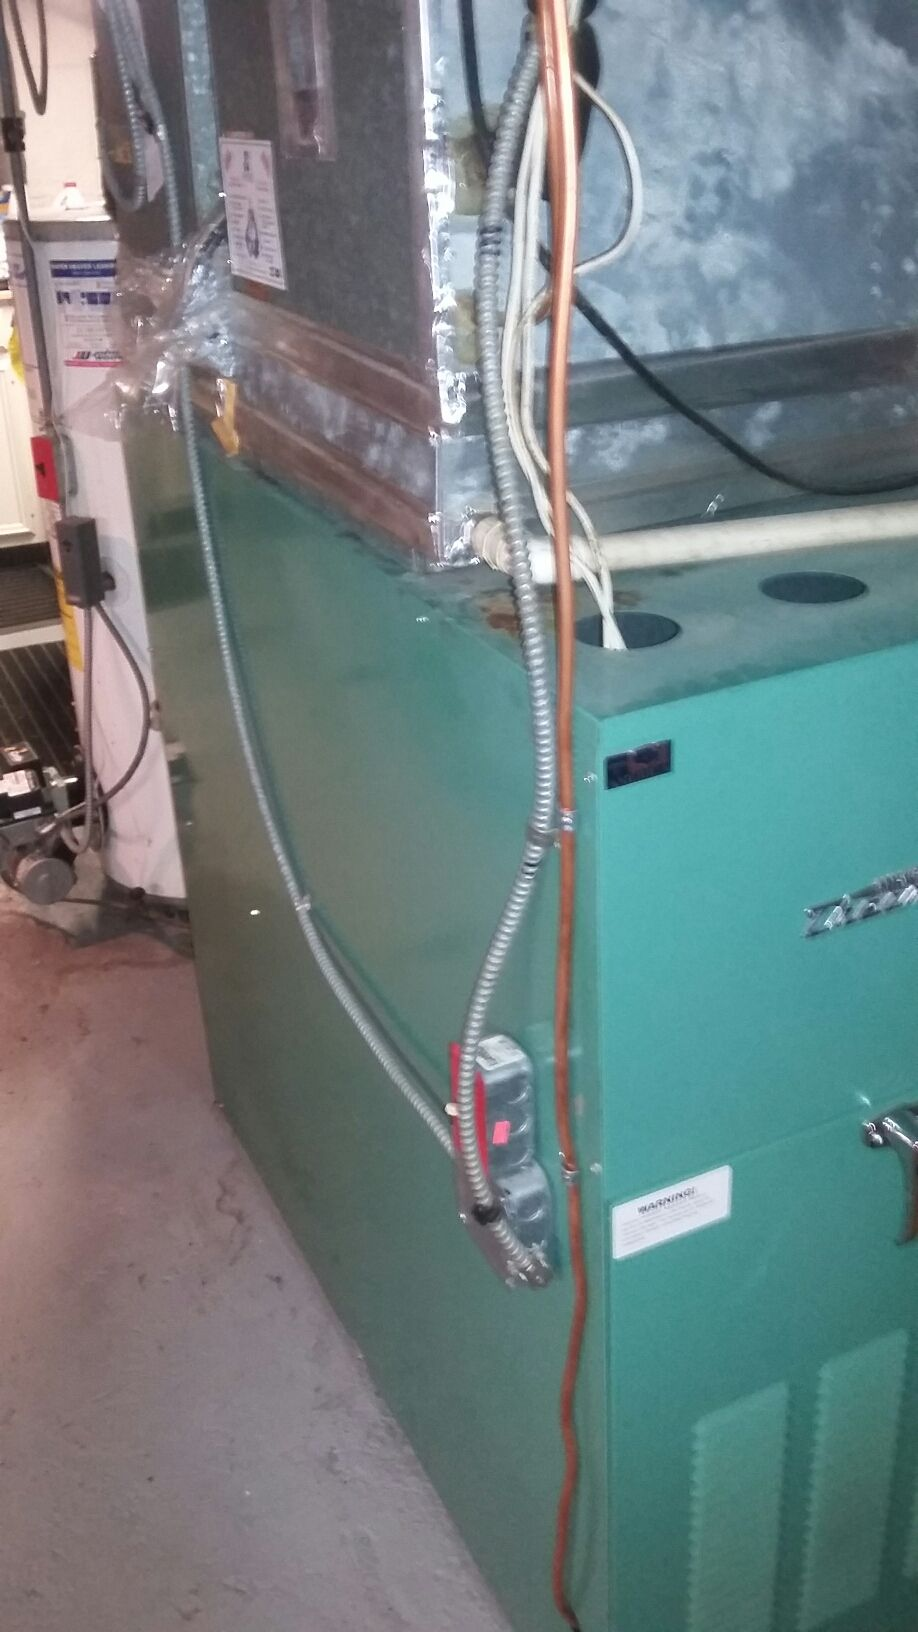 Precision tune up on heating oil fired furnace and water heater ...